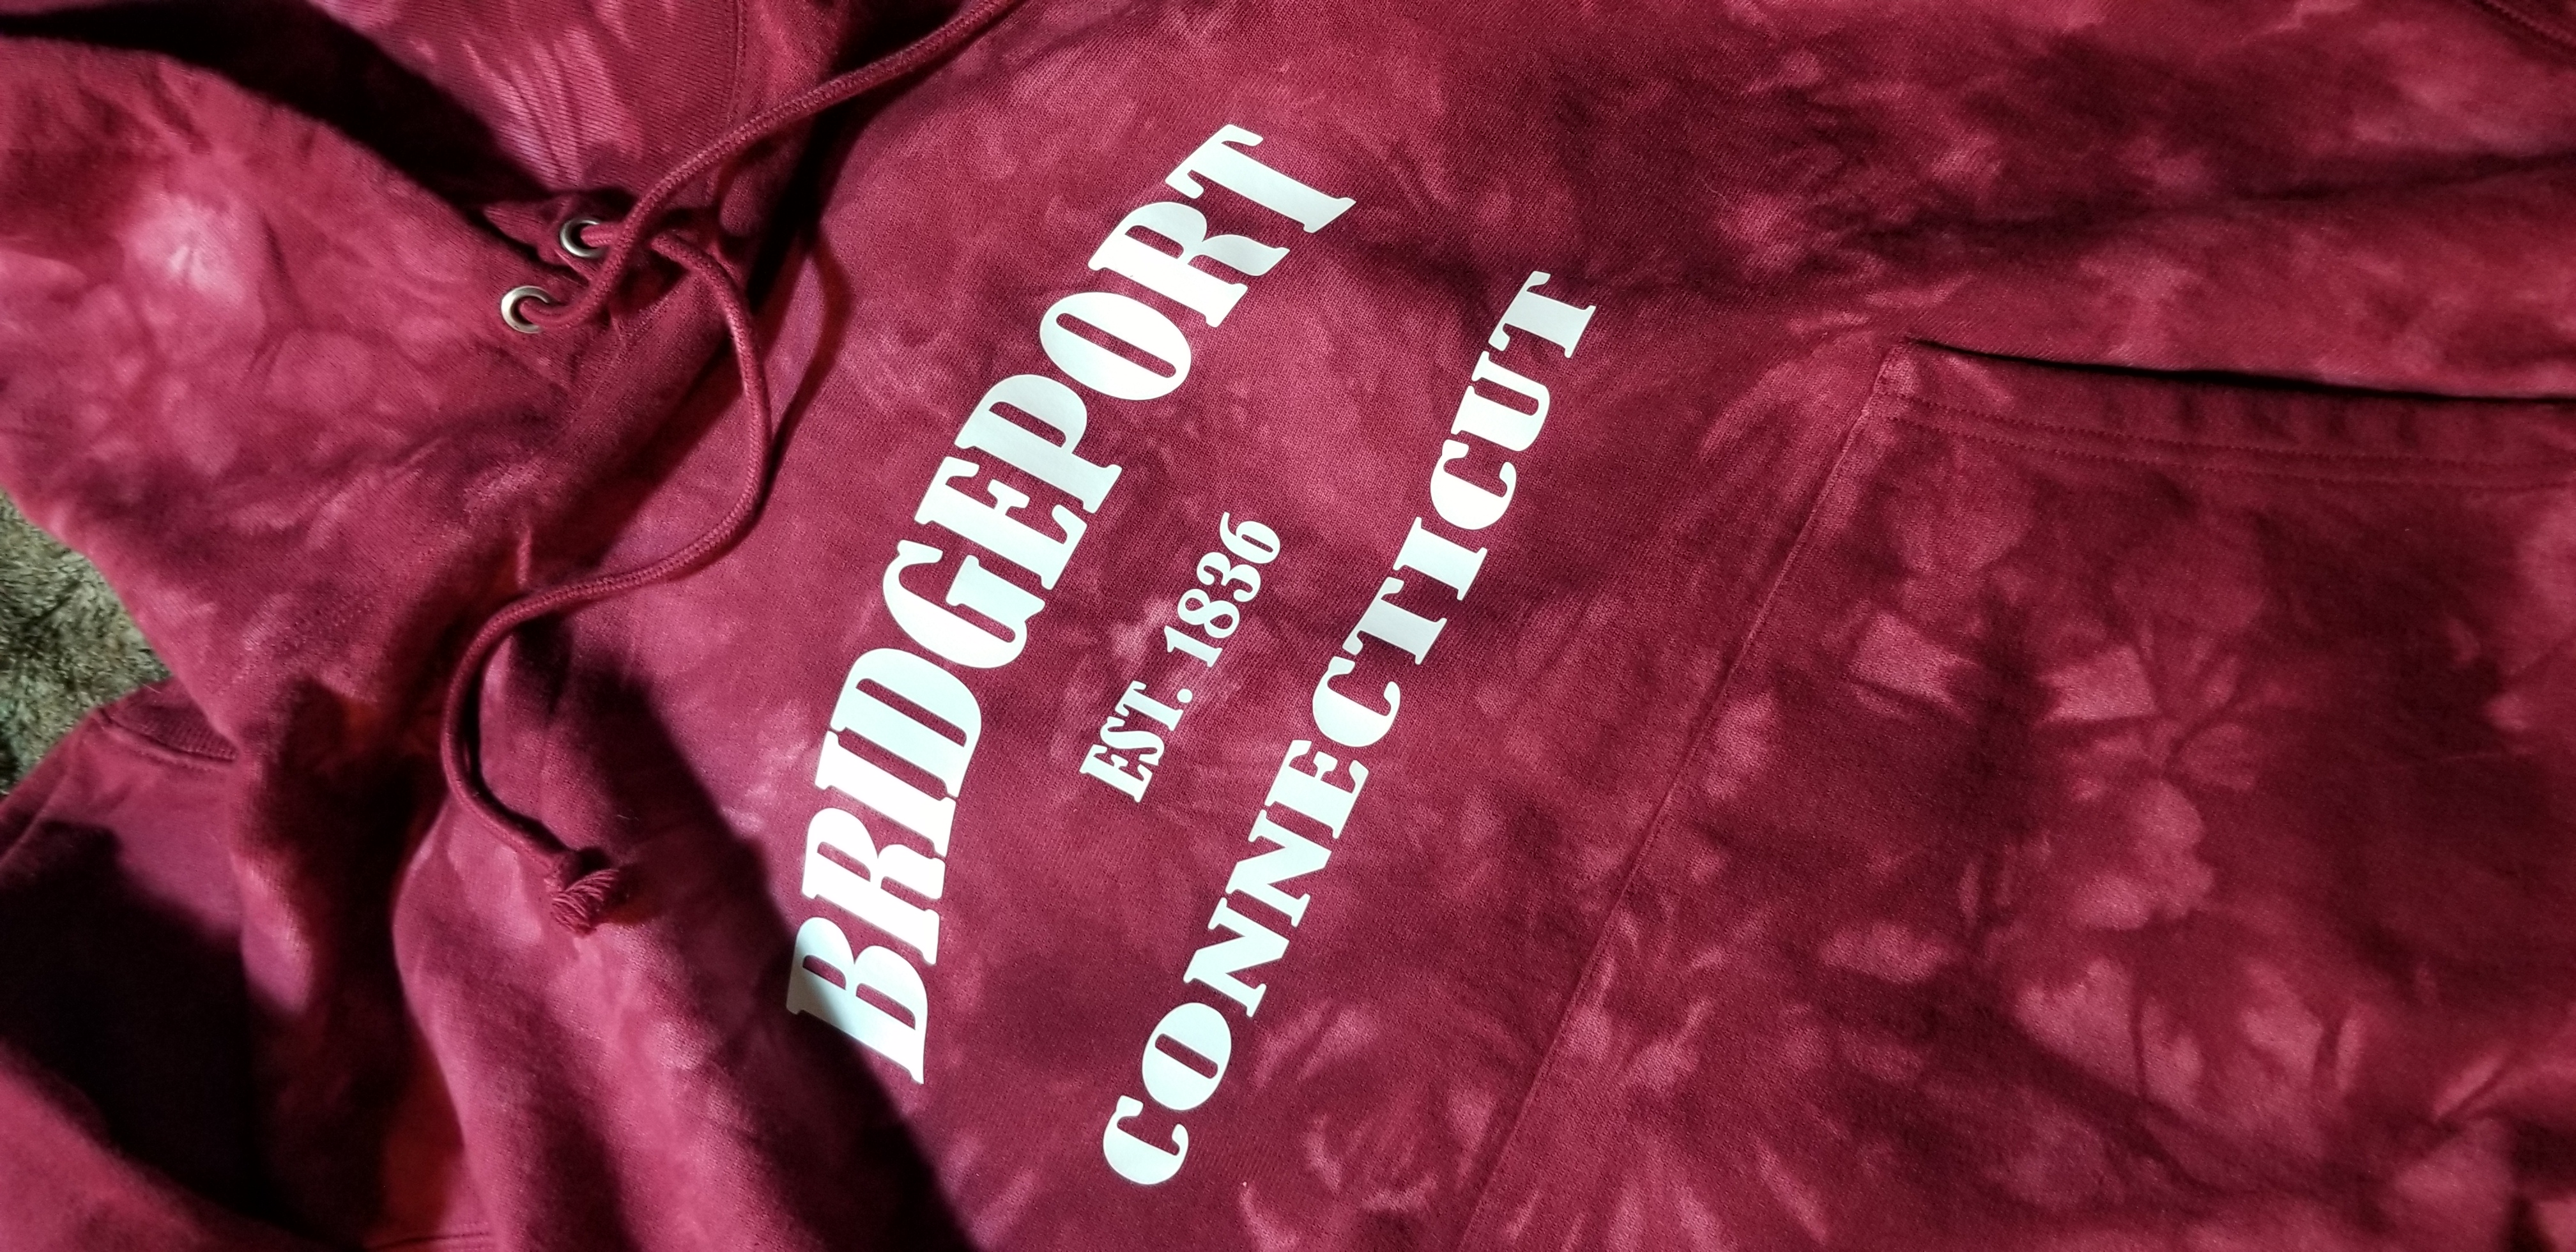 Custom Designed Bridgeport Connecticut Hoodie - Tie Die Red Champion Hoodie